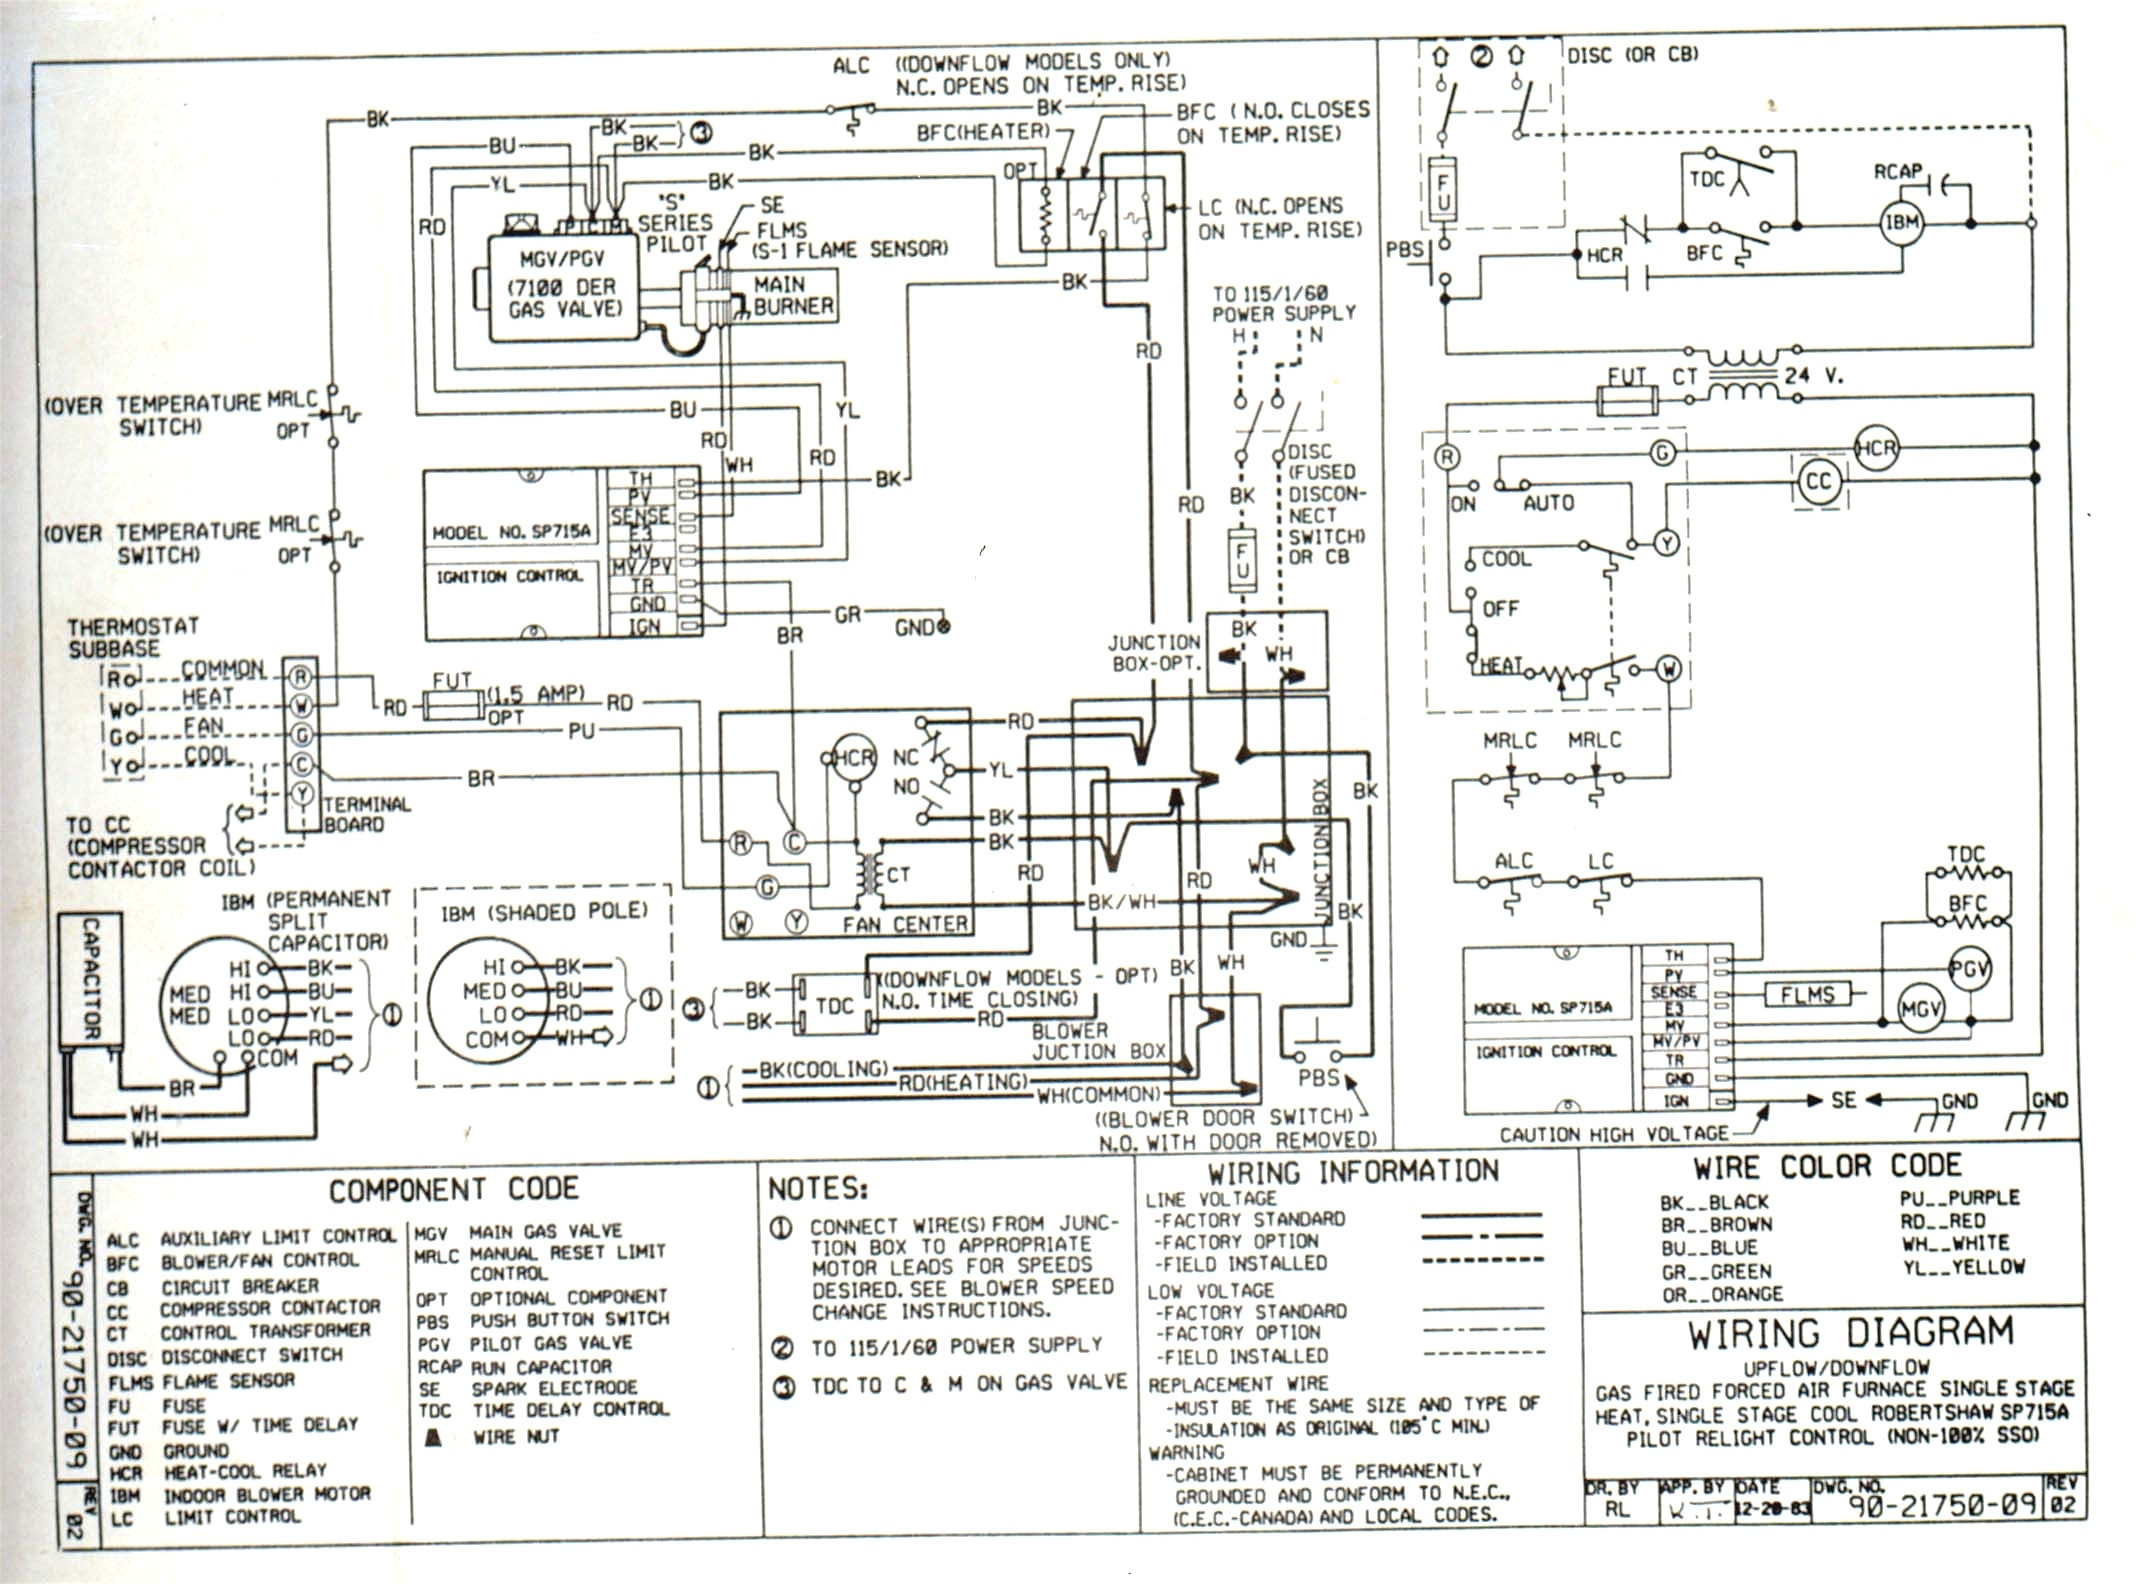 Uc400 Trane Wiring Diagram - Wiring Diagram Expert on